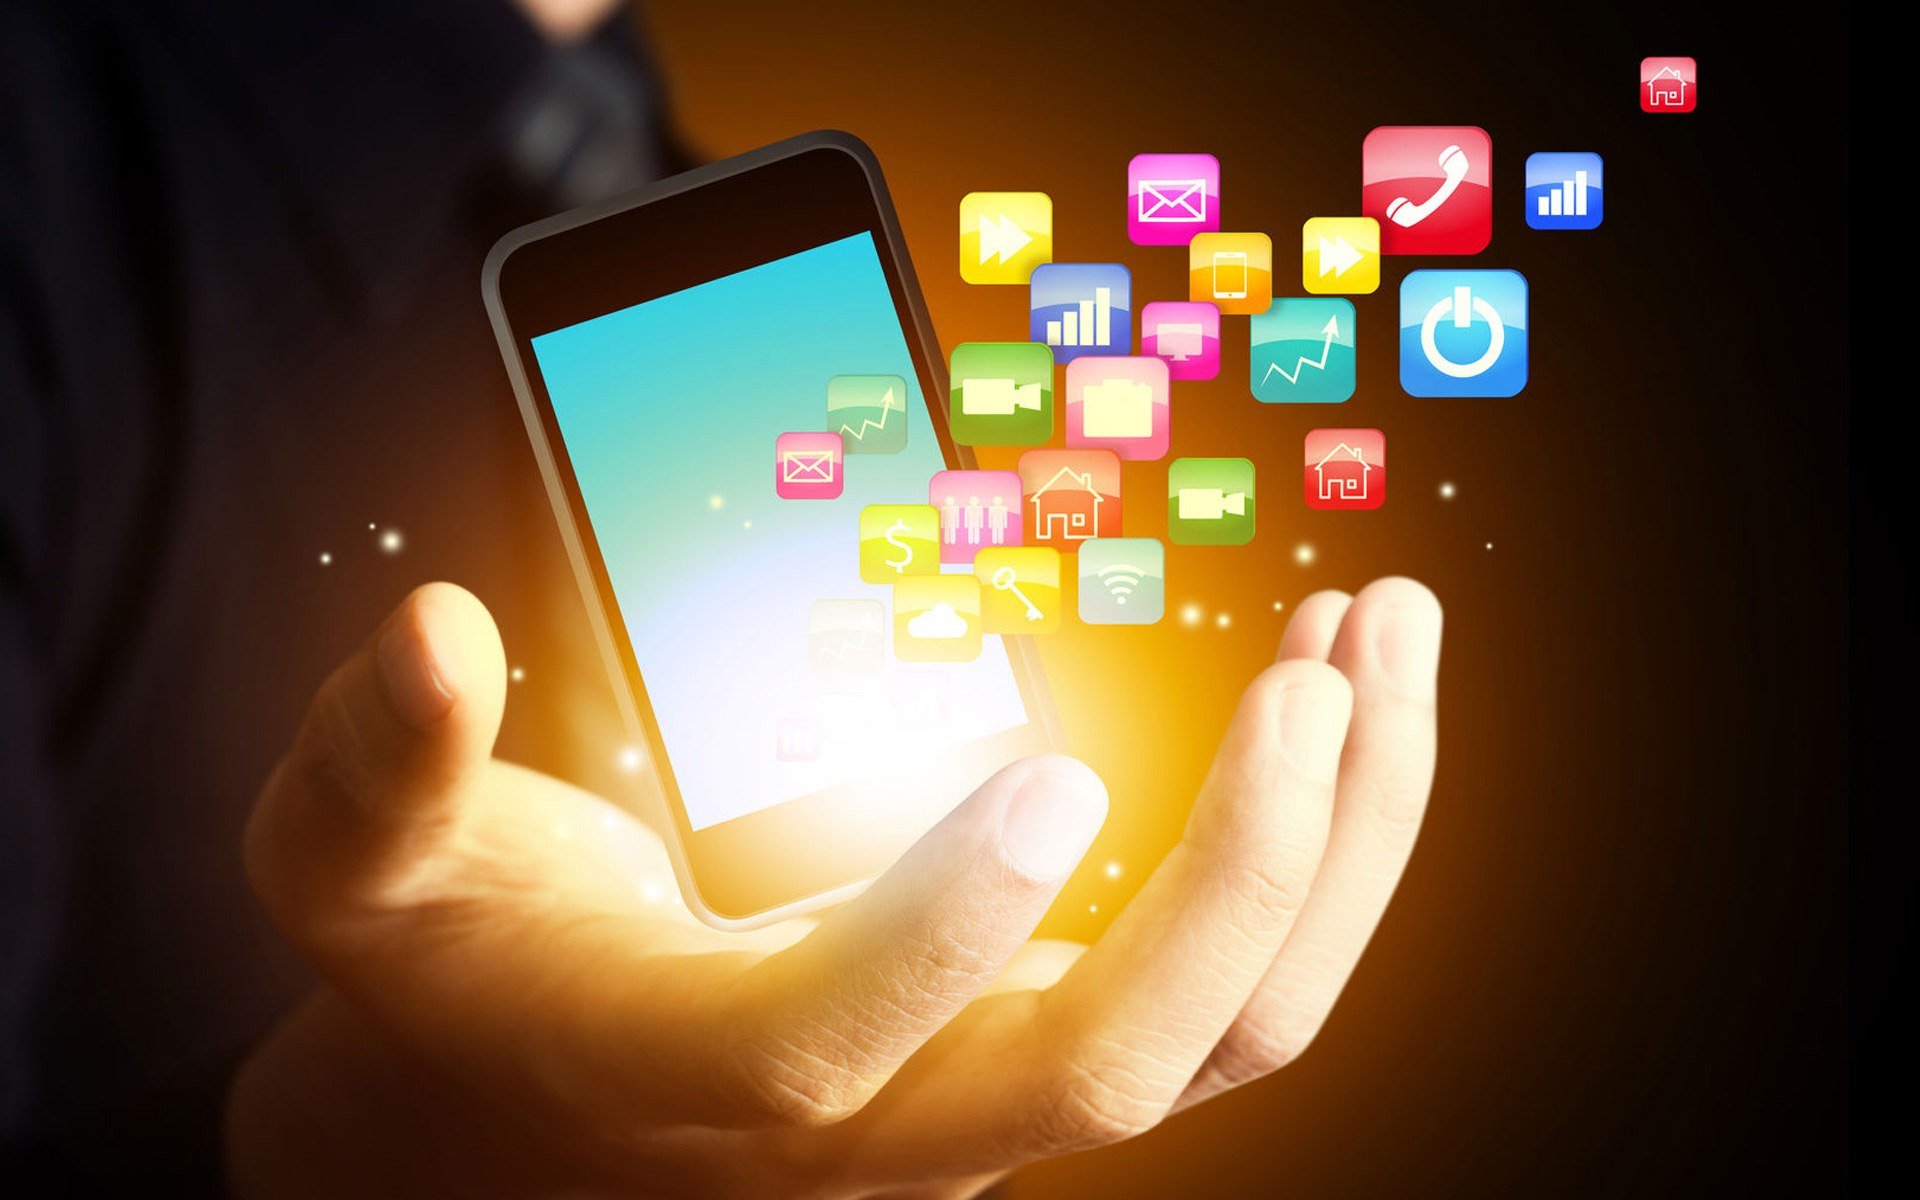 5 Top Challenges That Mobile App Developers Face